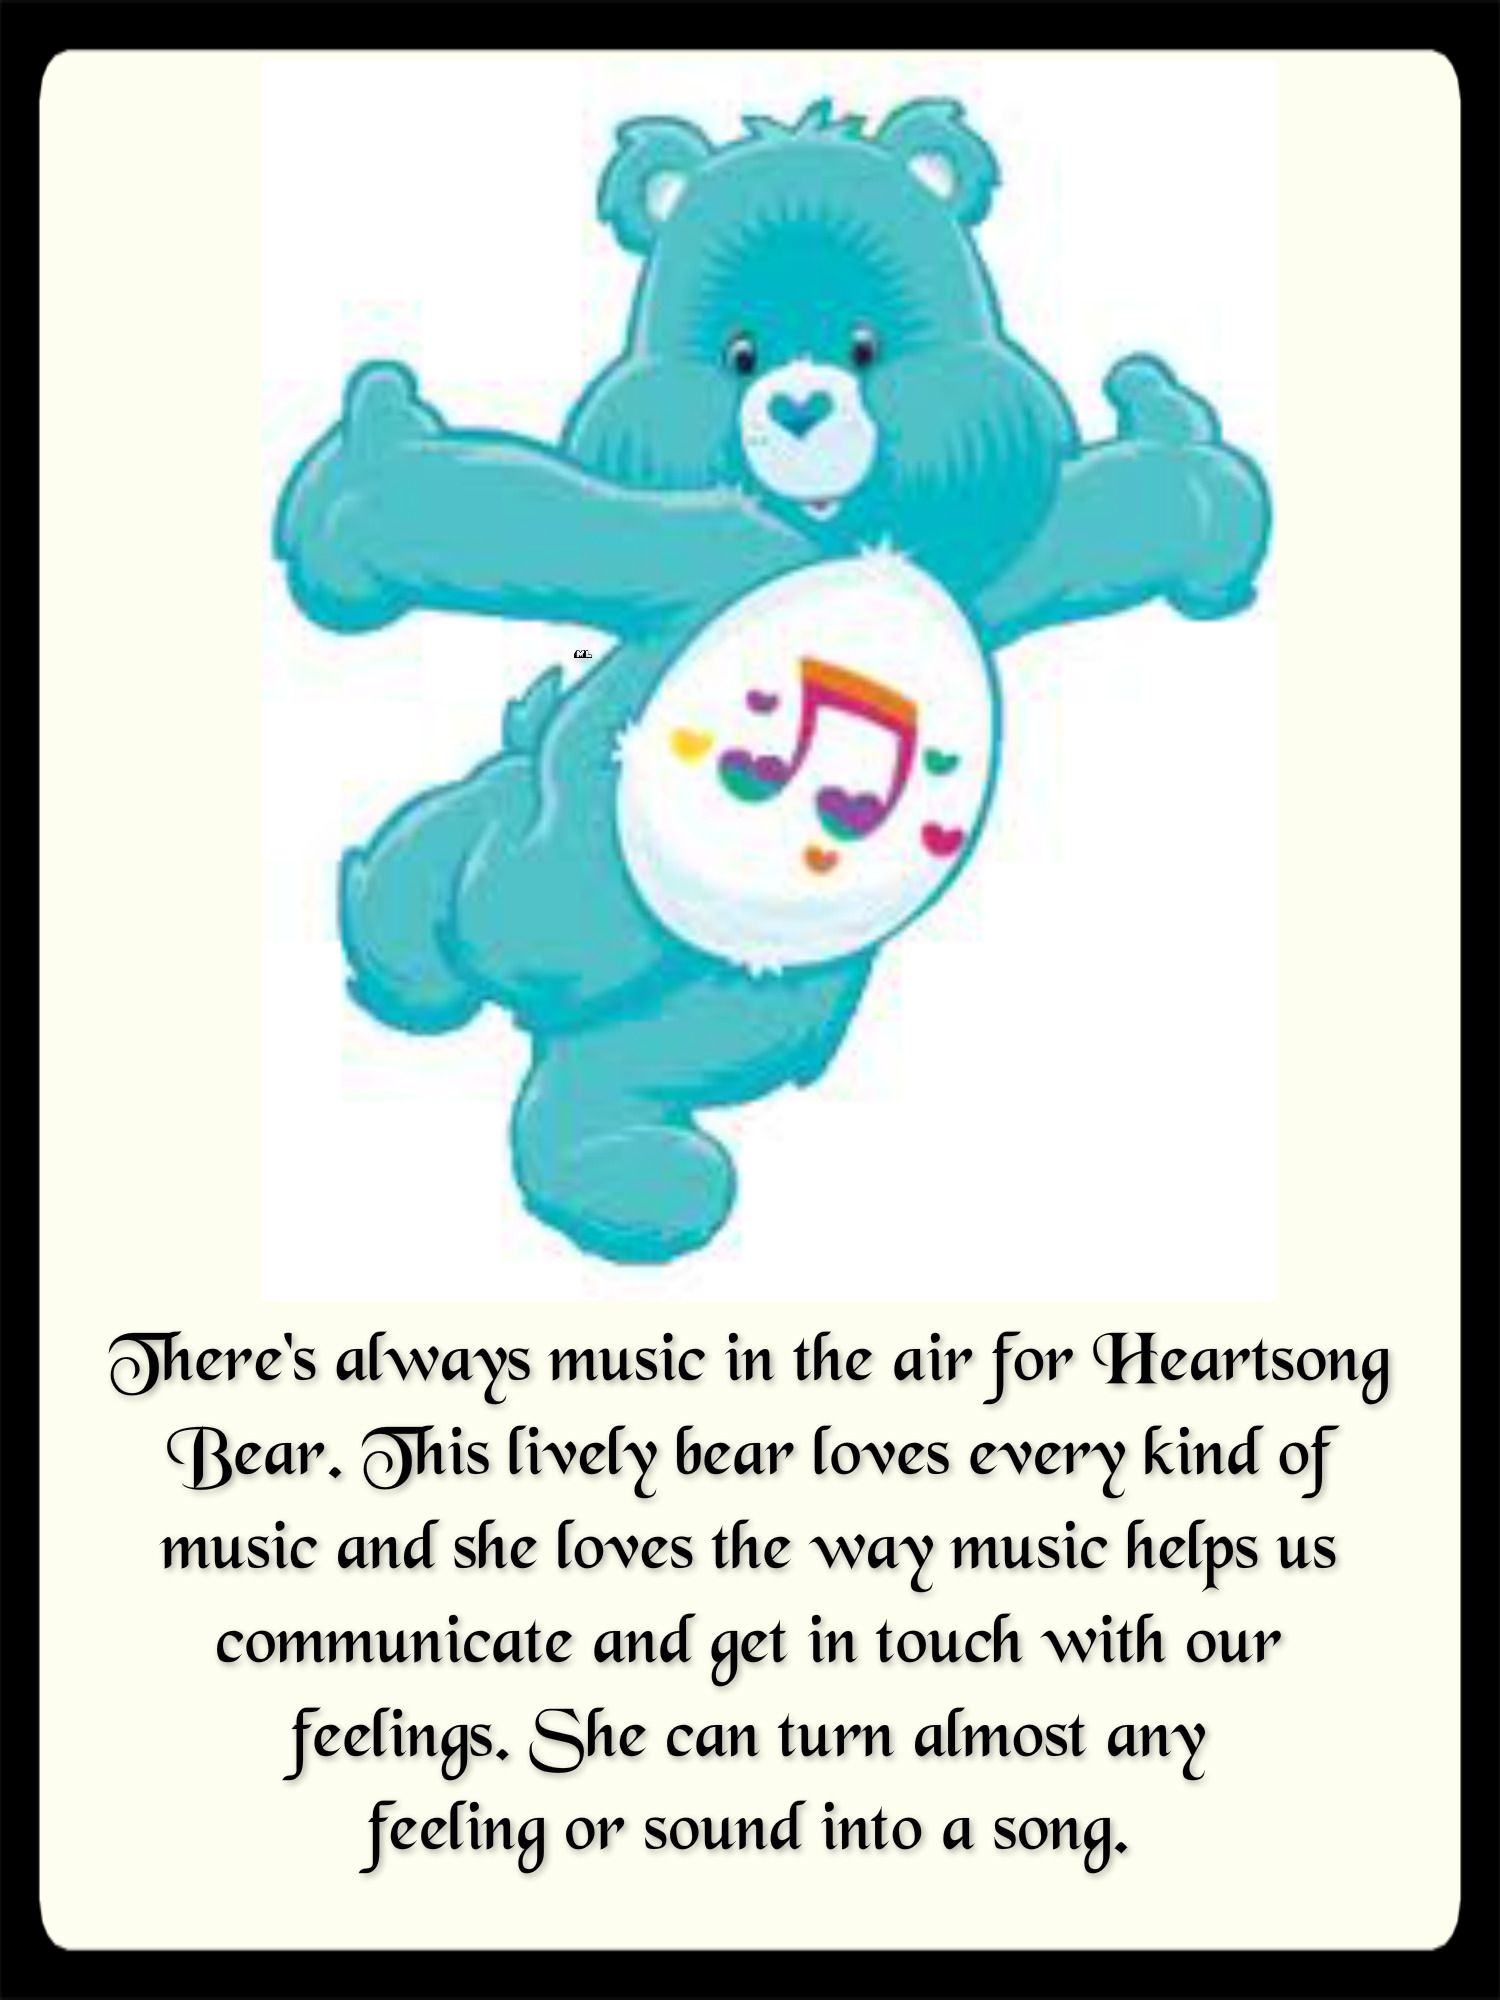 theres always music in the air for heartsong bear this